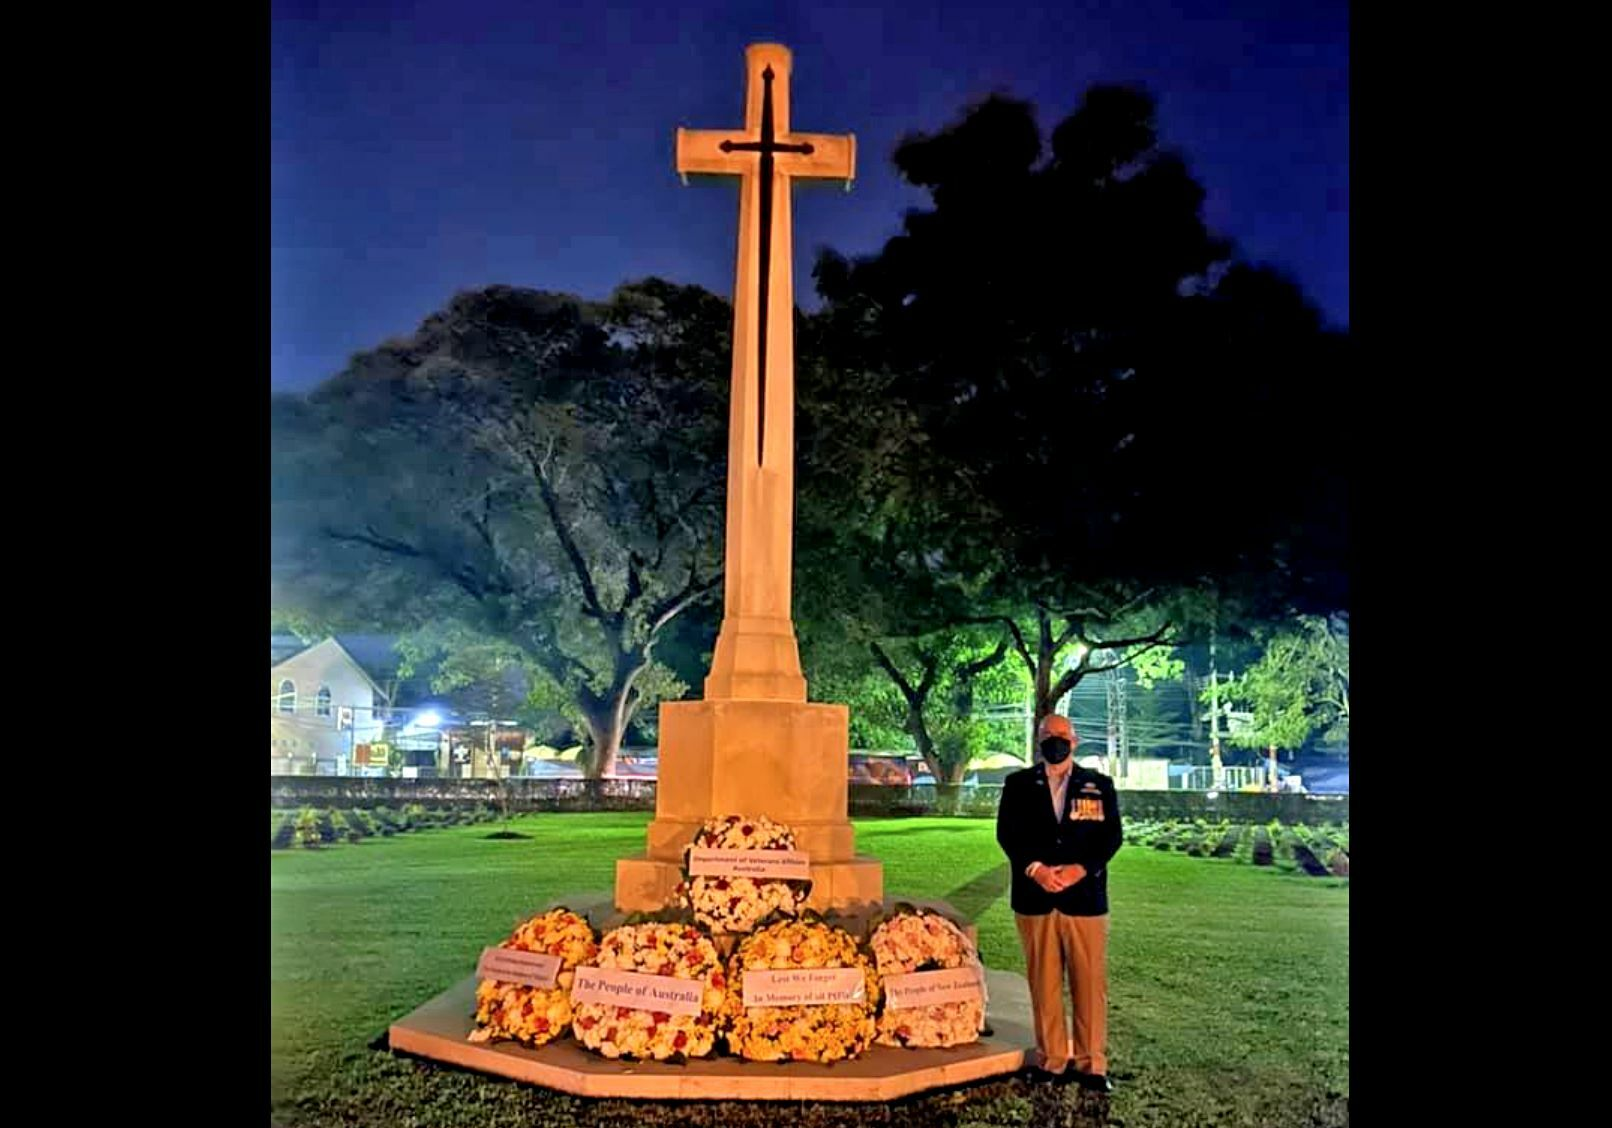 Lest we forget - ANZAC Day 2021 for Australians and New Zealanders | News by Thaiger